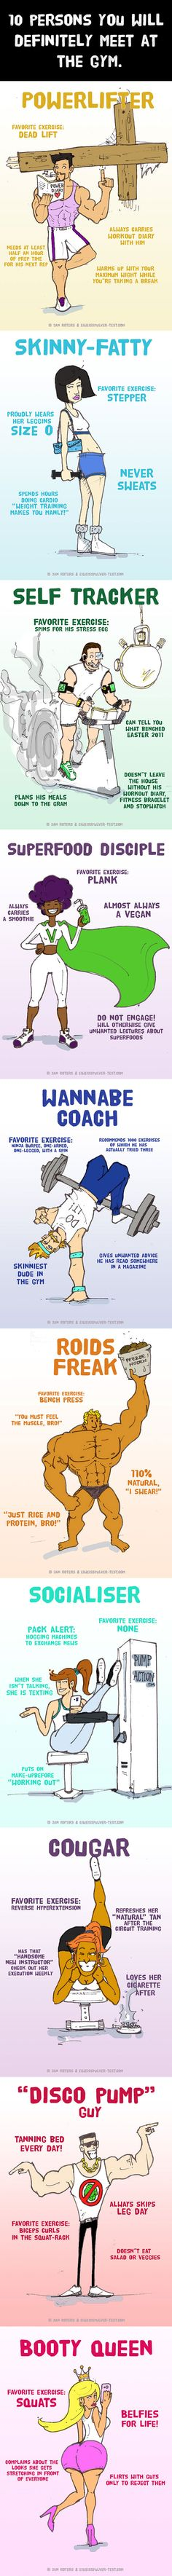 10 persons you will definitely meet at the gym - 9GAG